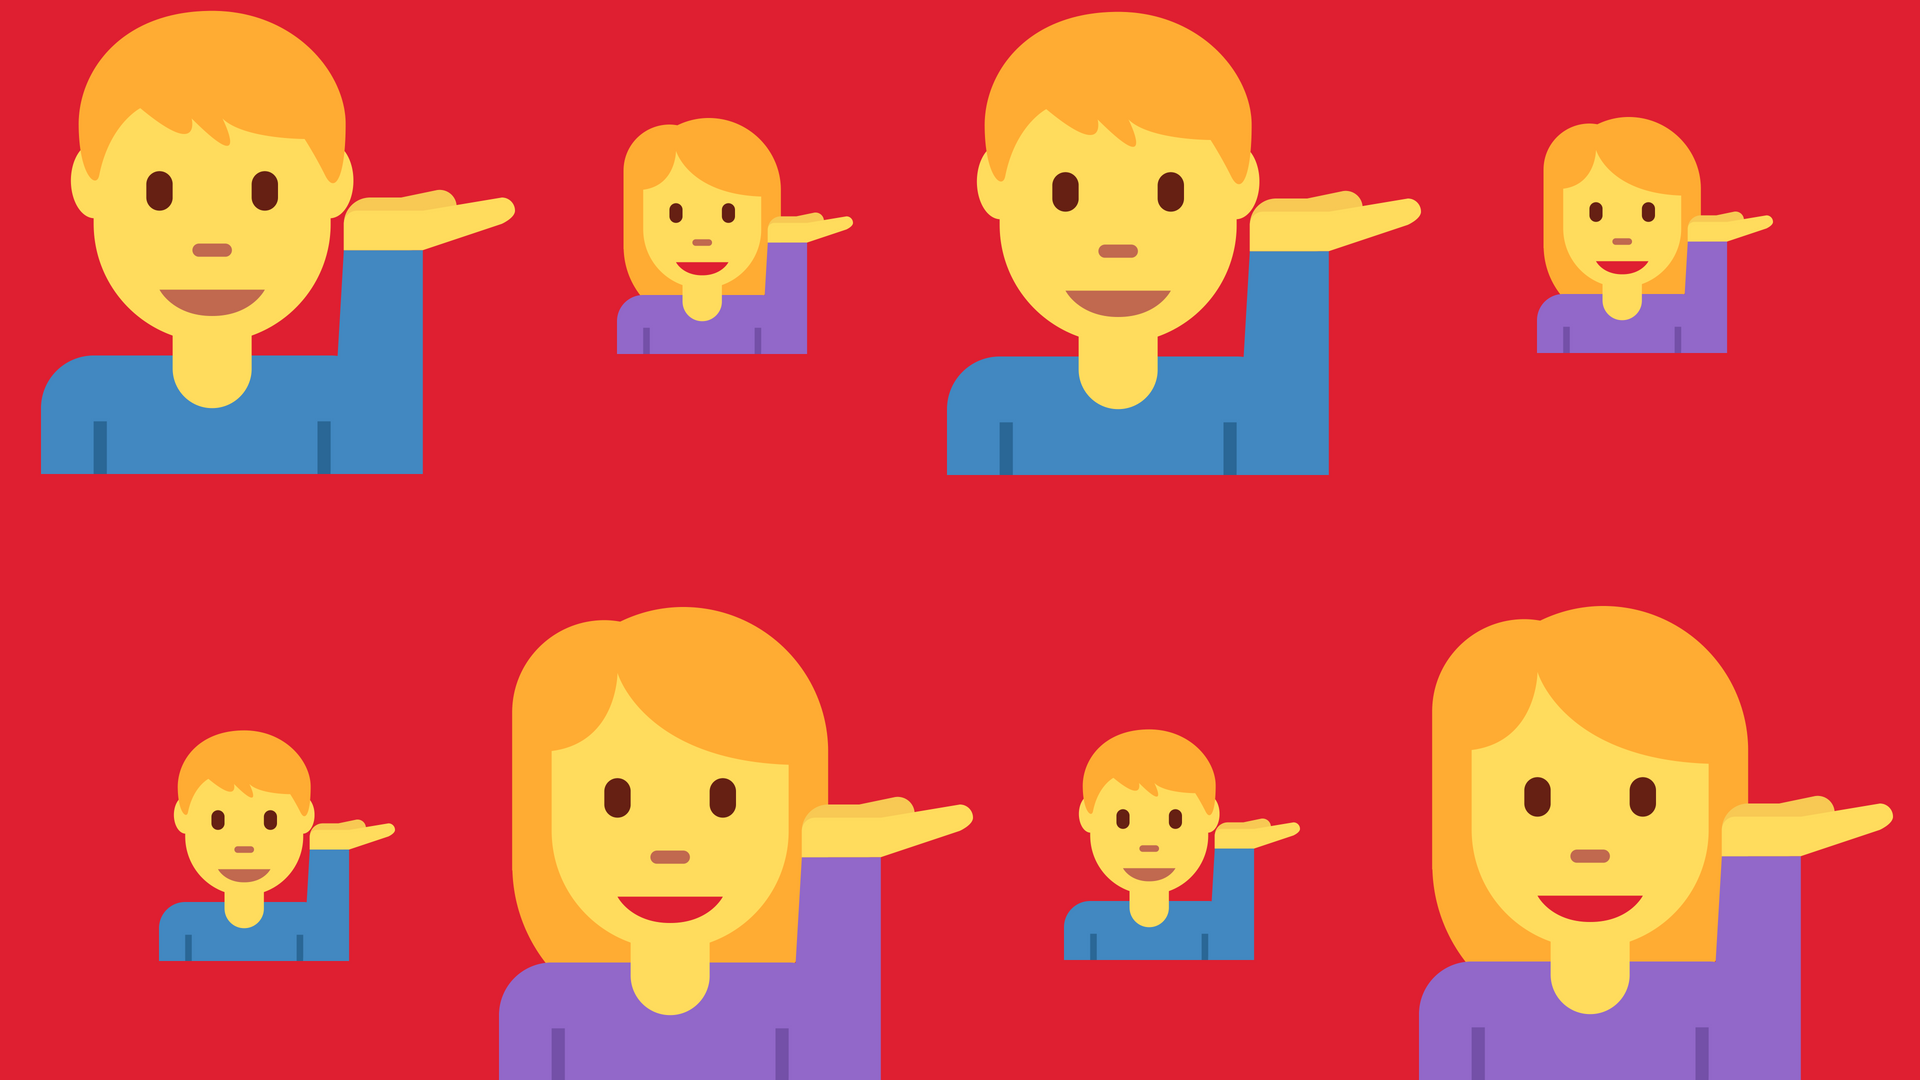 Alternating male and female emoji people tipping their right hands on a red background.